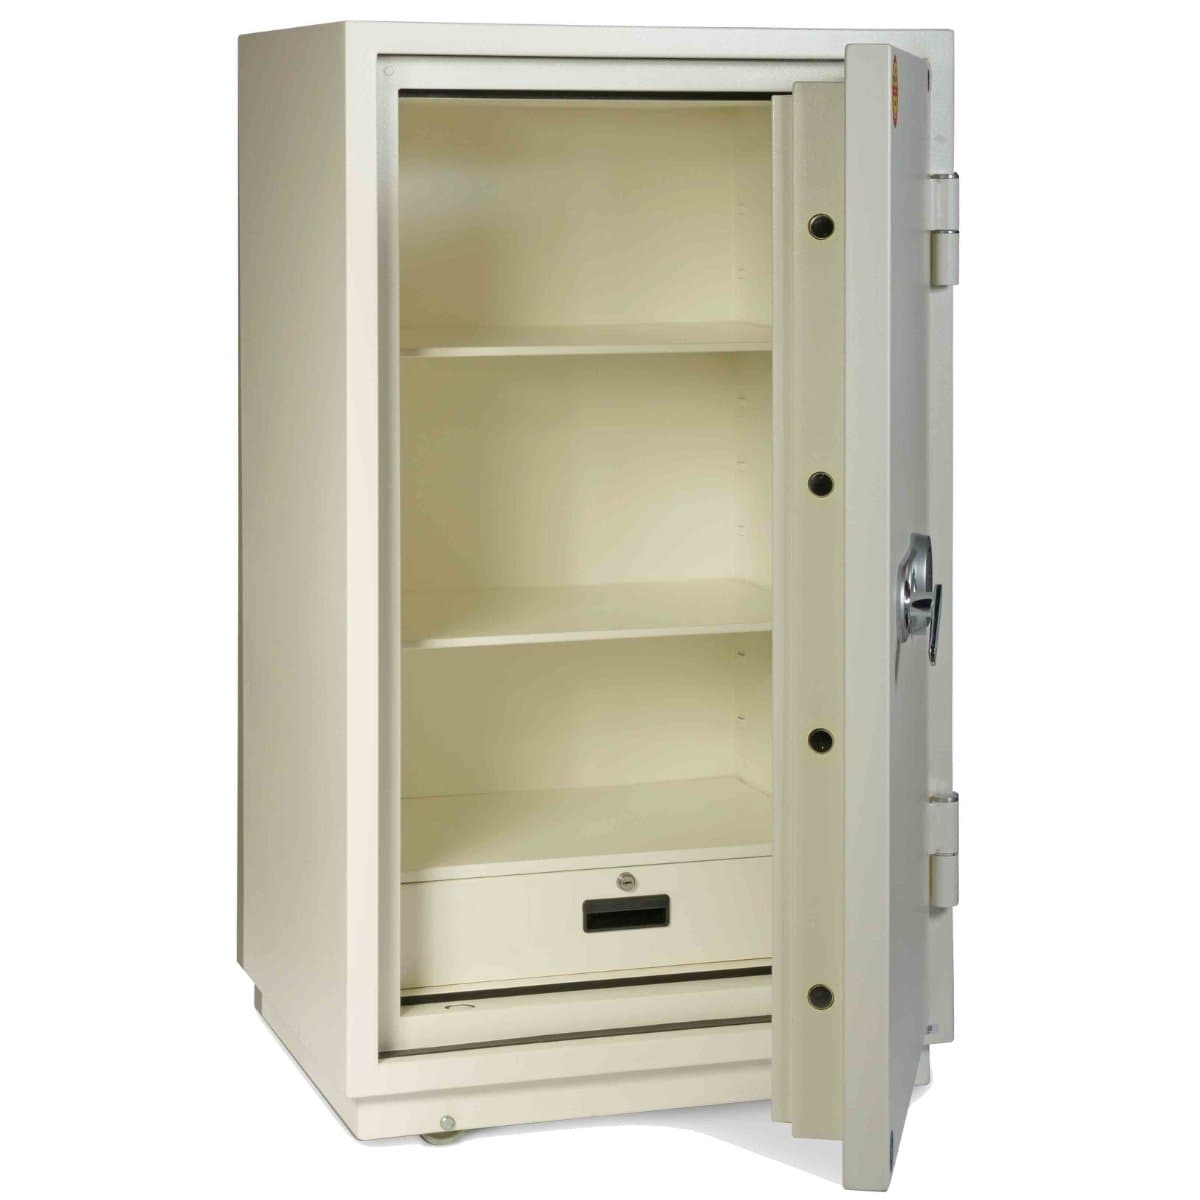 Valberg FRS-120 KL Fire Resistant Safe, 2 Key Locks, White